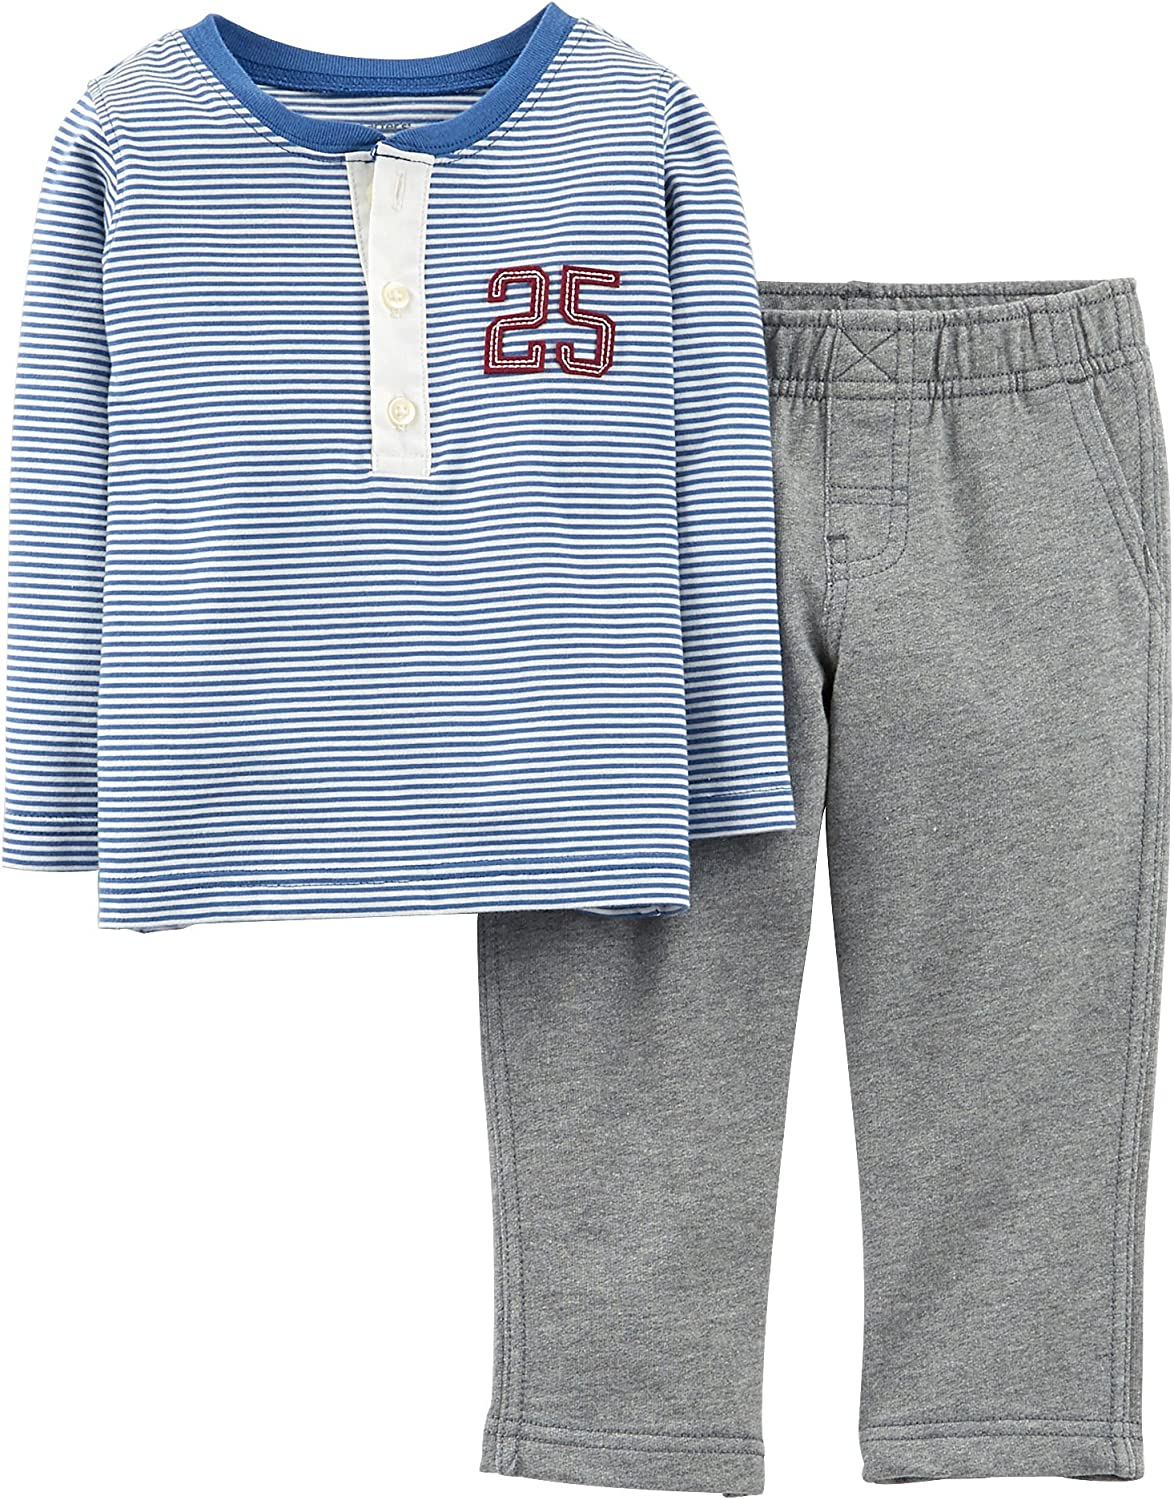 Carters Baby Boys Mommy's All-Star Henley Set 9 Month Blue/grey